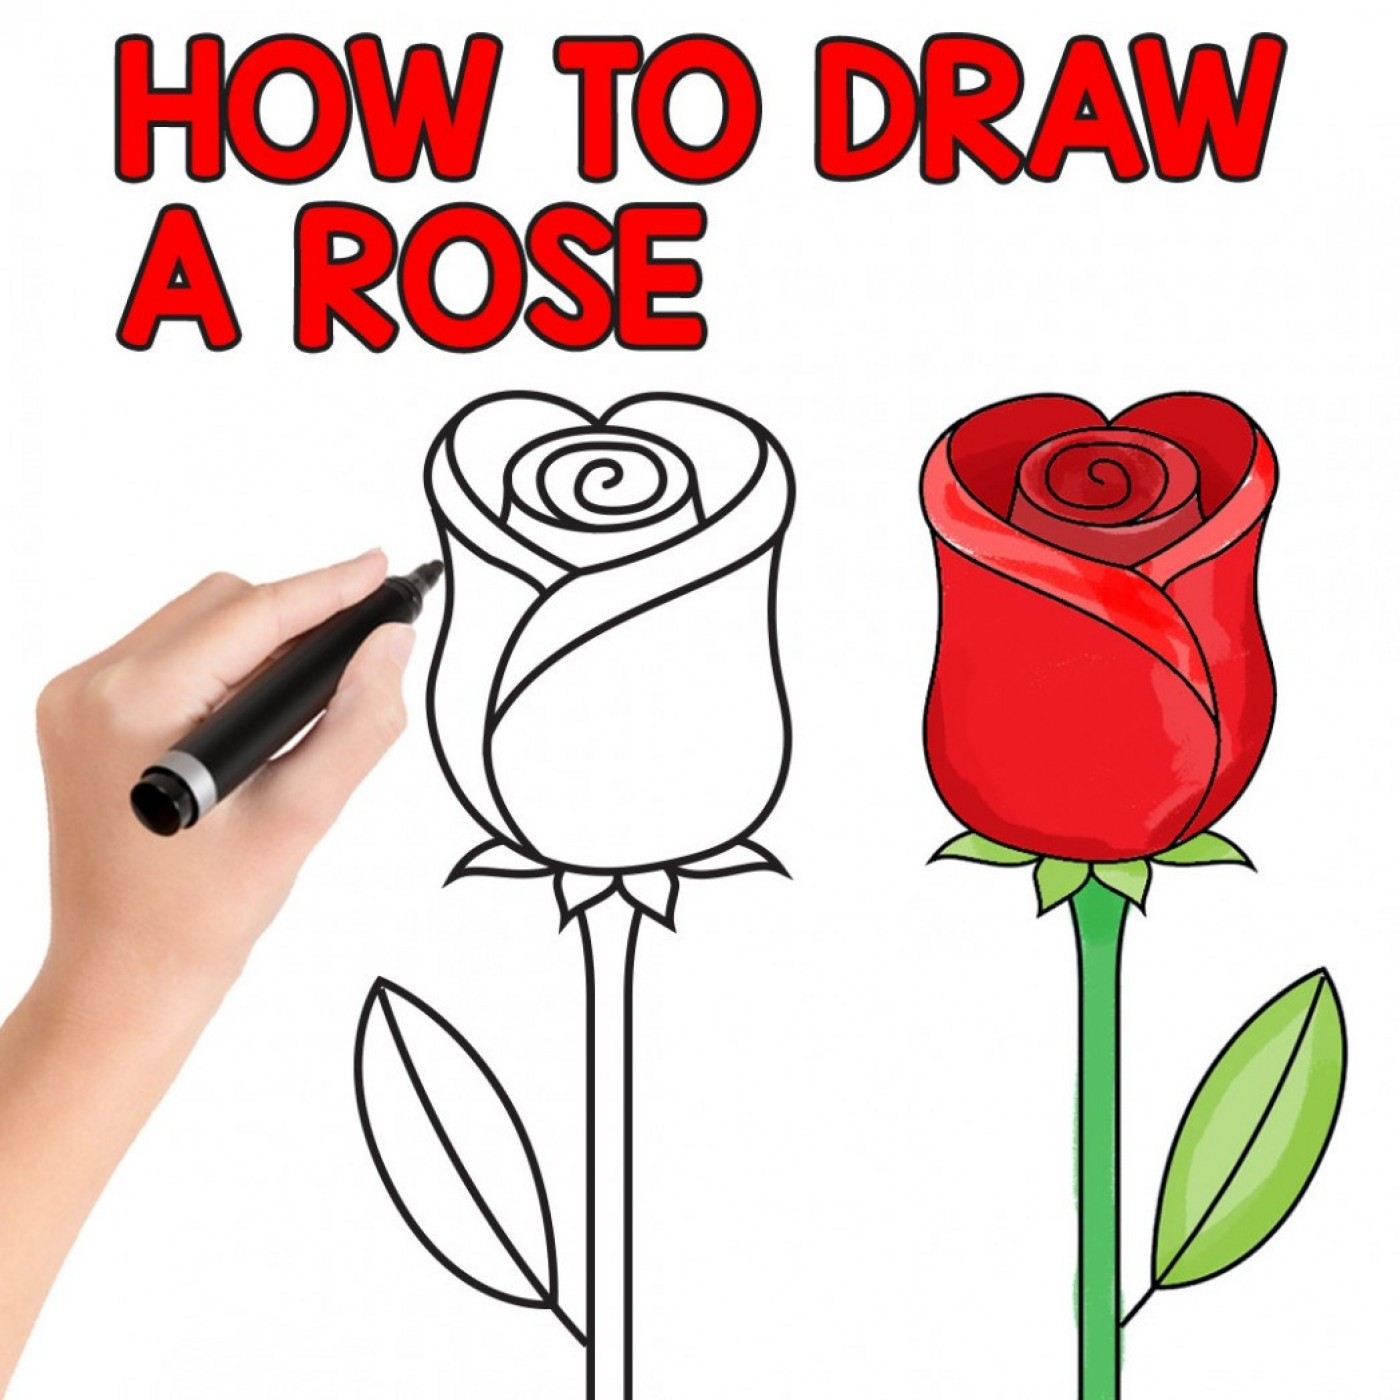 essay of rose flower example modest proposal examples awesome    essay of rose flower example how to draw easy step by for beginners and  kids